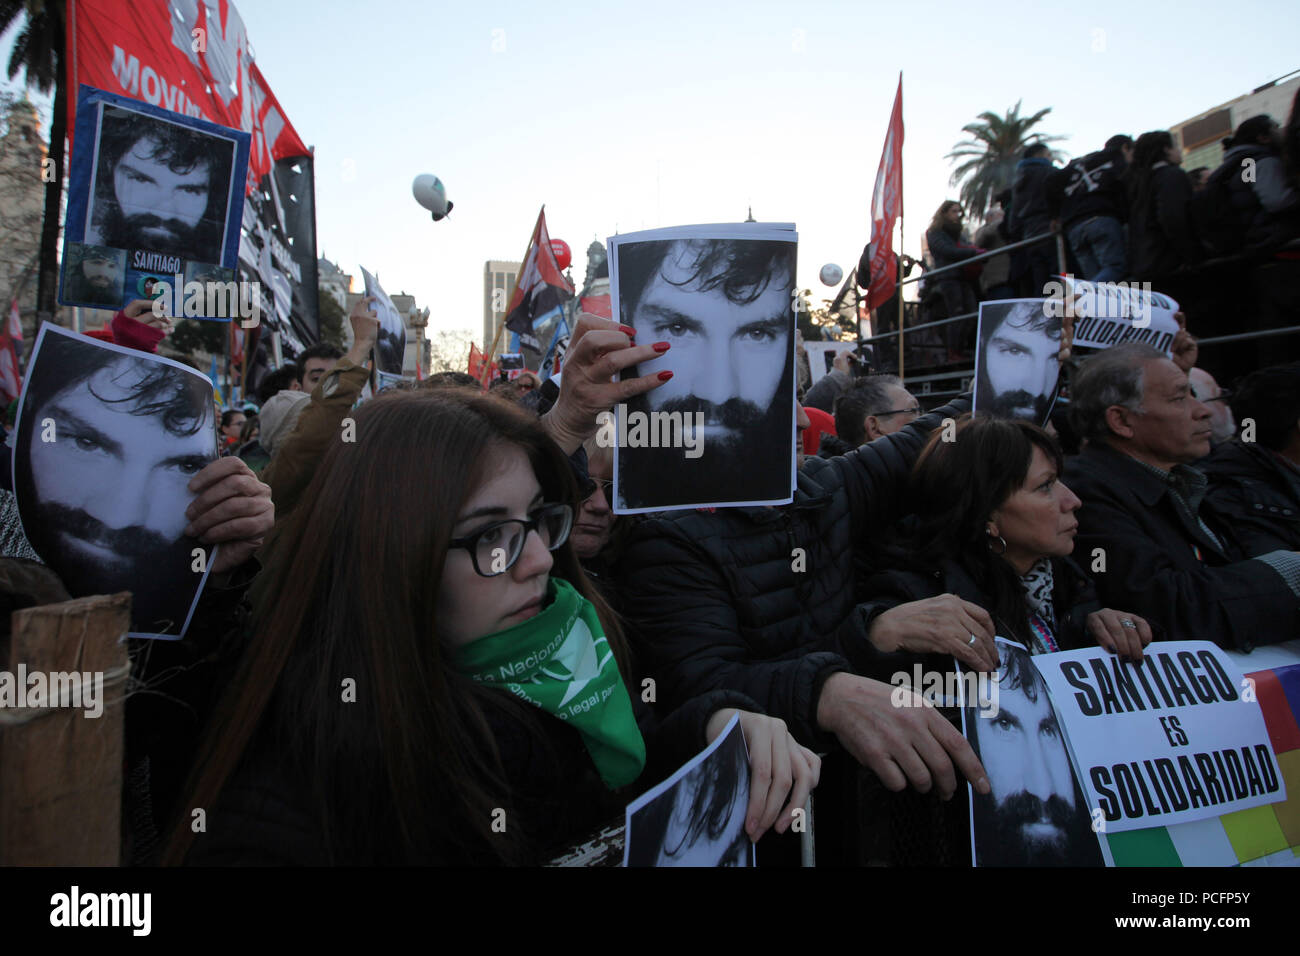 Buenos Aires, Buenos Aires, Argentina. 1st Aug, 2018. The family of Argentinian artist and activist Santiago Maldonado, who died following a confrontation with police at a Mapuche land protest last year, has called for a march to commemorate the first anniversary of his forced disappearance. Credit: Claudio Santisteban/ZUMA Wire/Alamy Live News - Stock Image